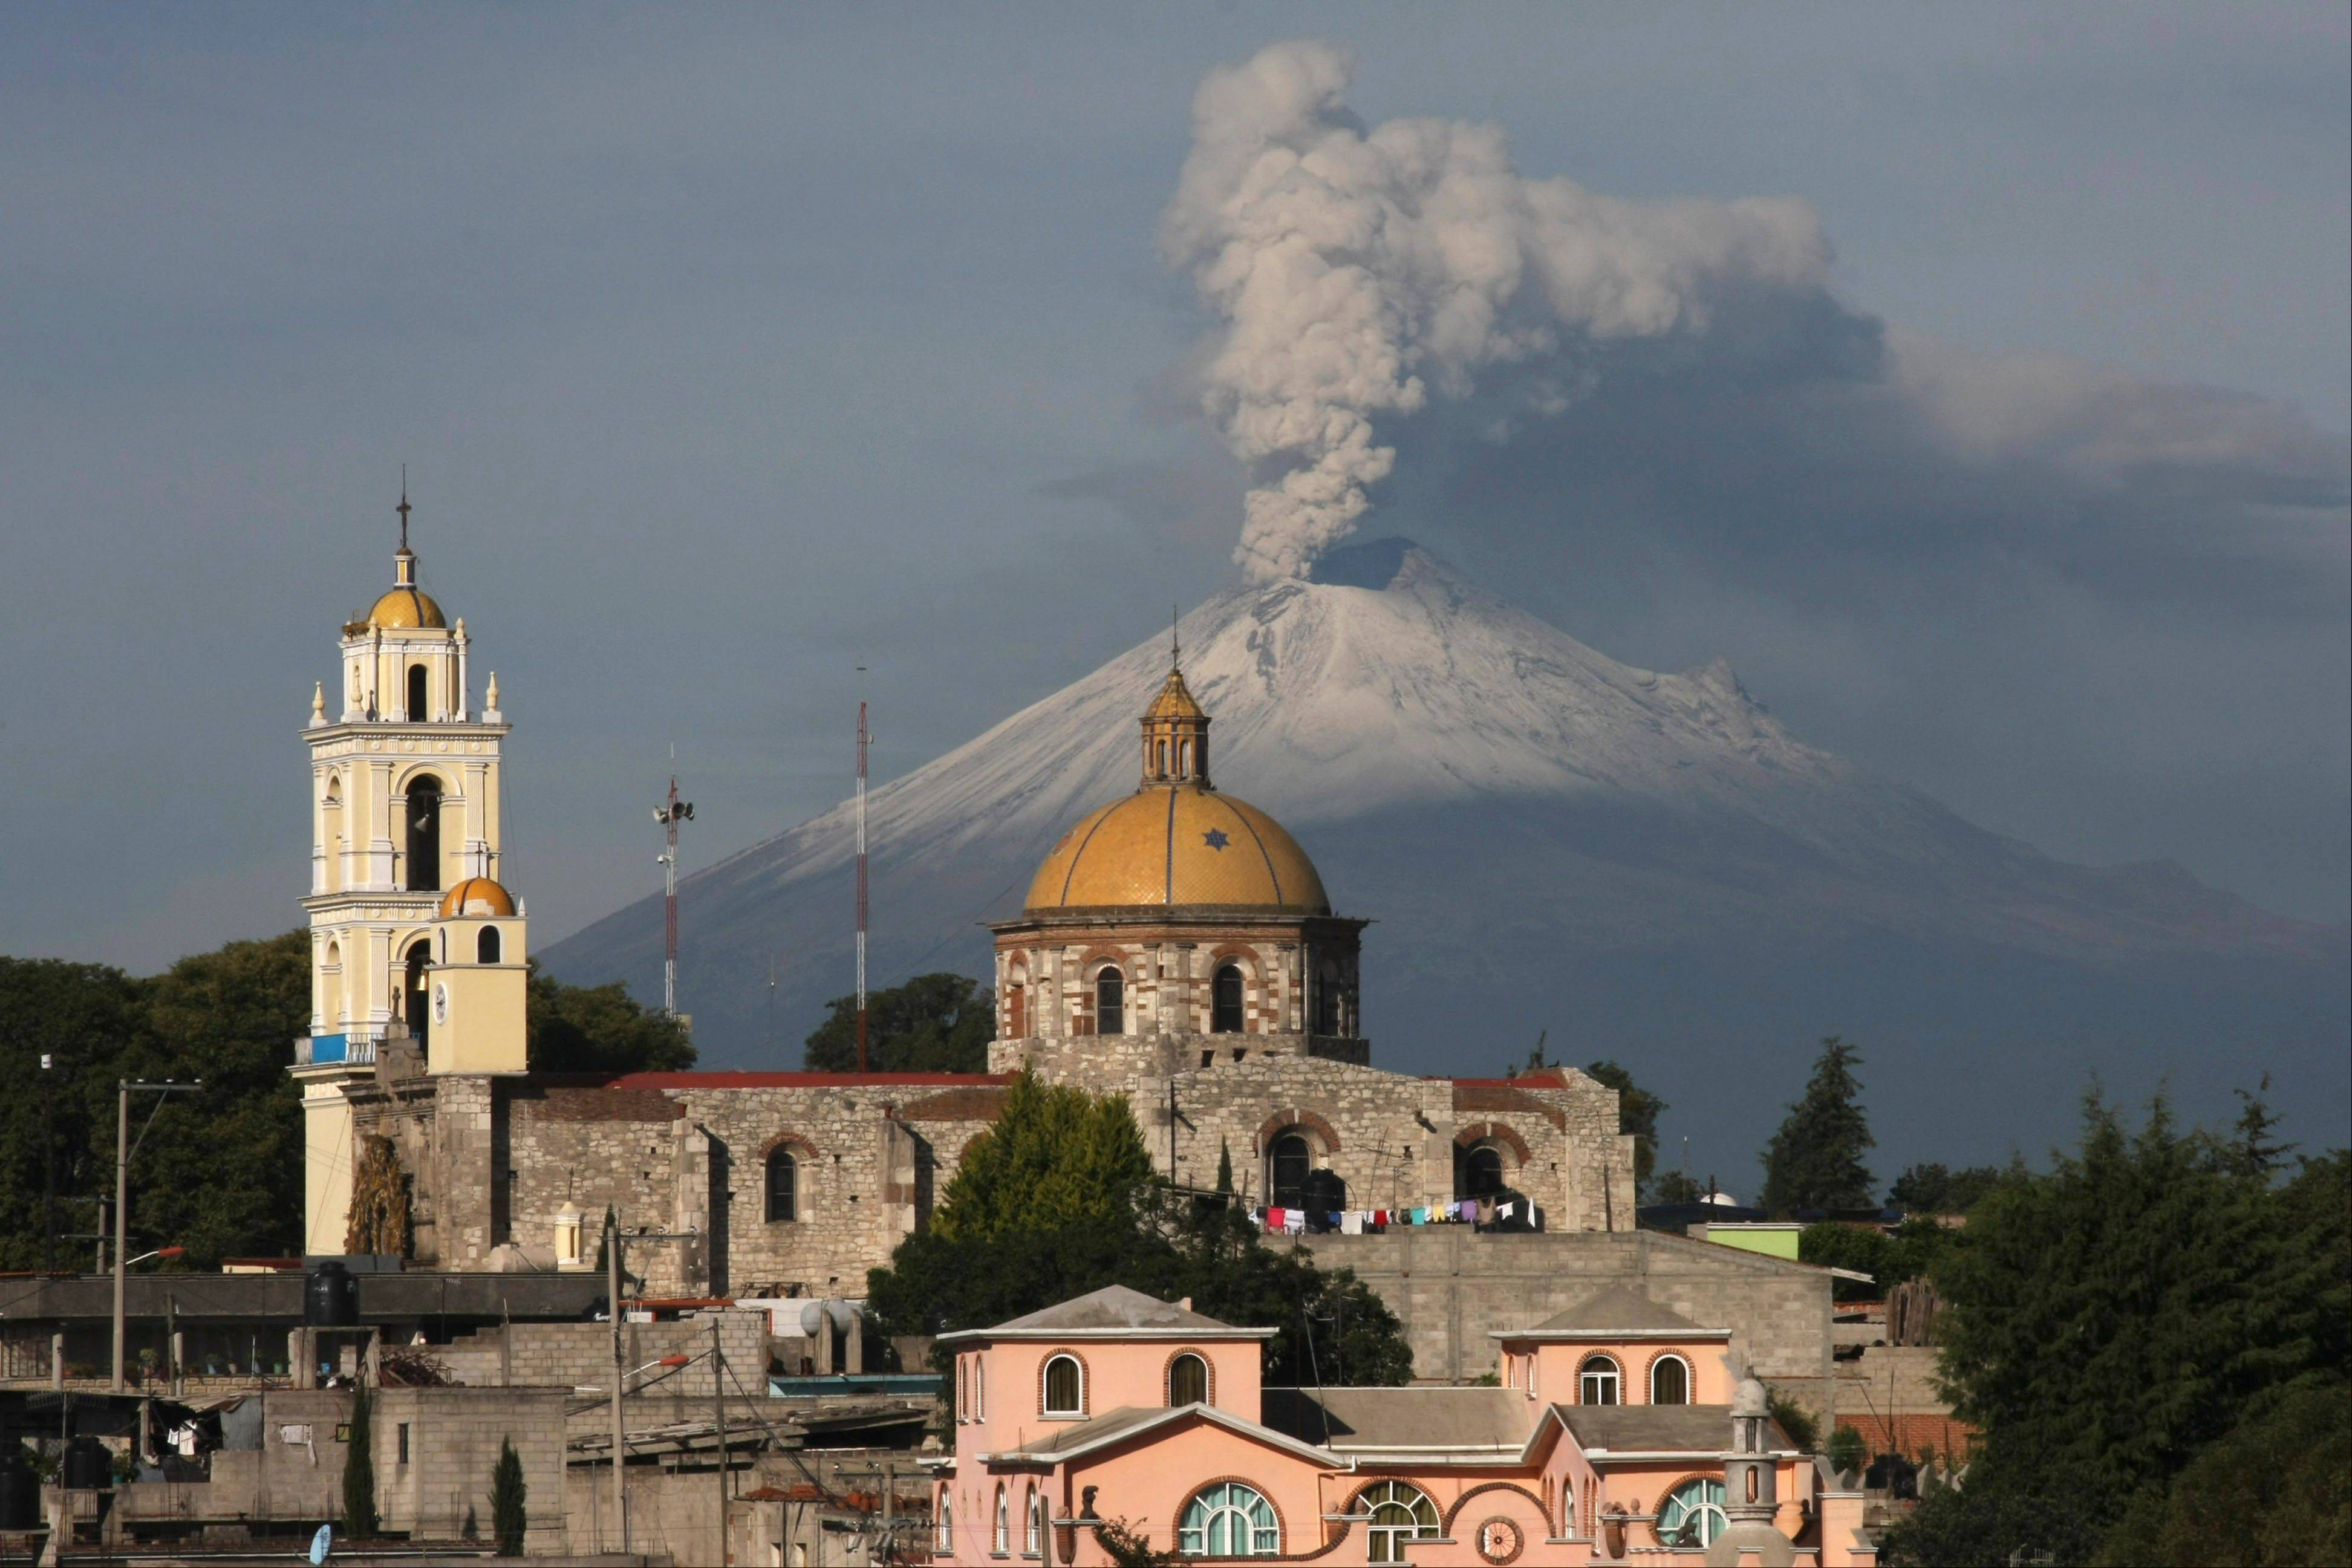 In this July 9, 2013 file photo, the church in the town of San Damian Texoloc, Mexico stands near Popocatepetl volcano spewing ash and vapor. Mexico's disaster prevention center says Popocatepetl has been active for at least 500,000 years. The biggest danger for those nearby are mudslides and swift-moving clouds of gas.